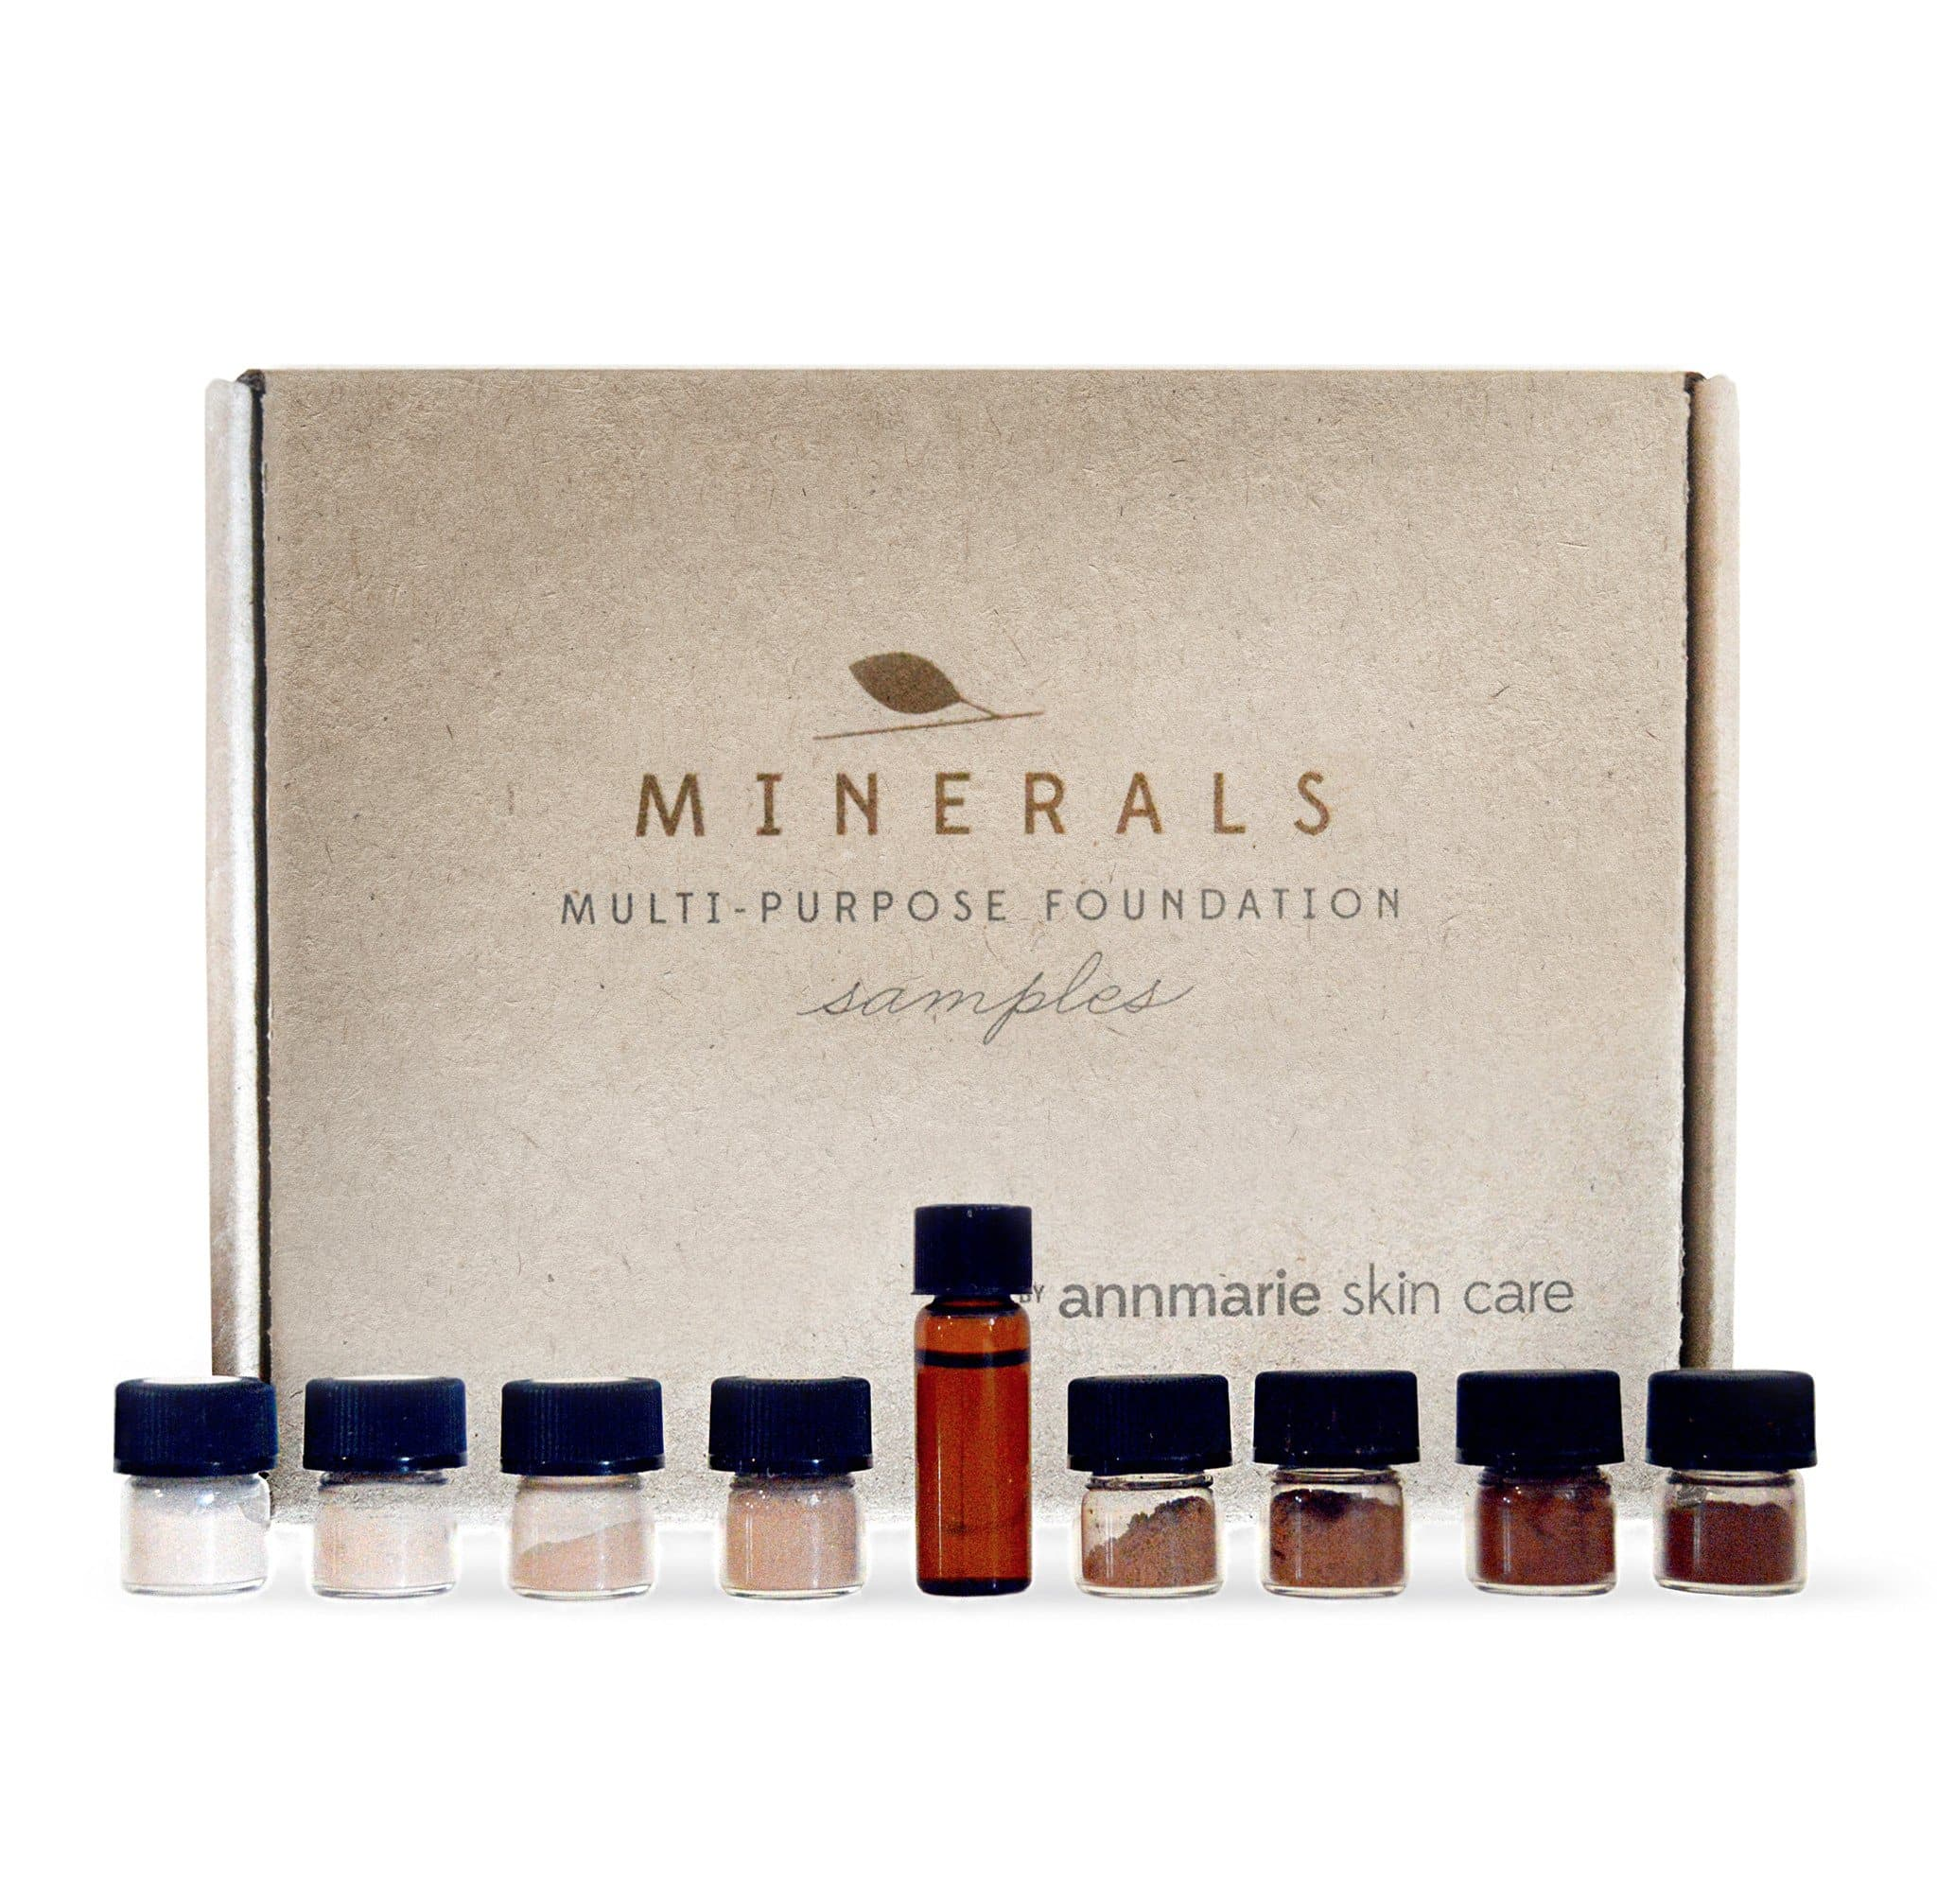 Minerals Multi-Purpose Foundation Kit